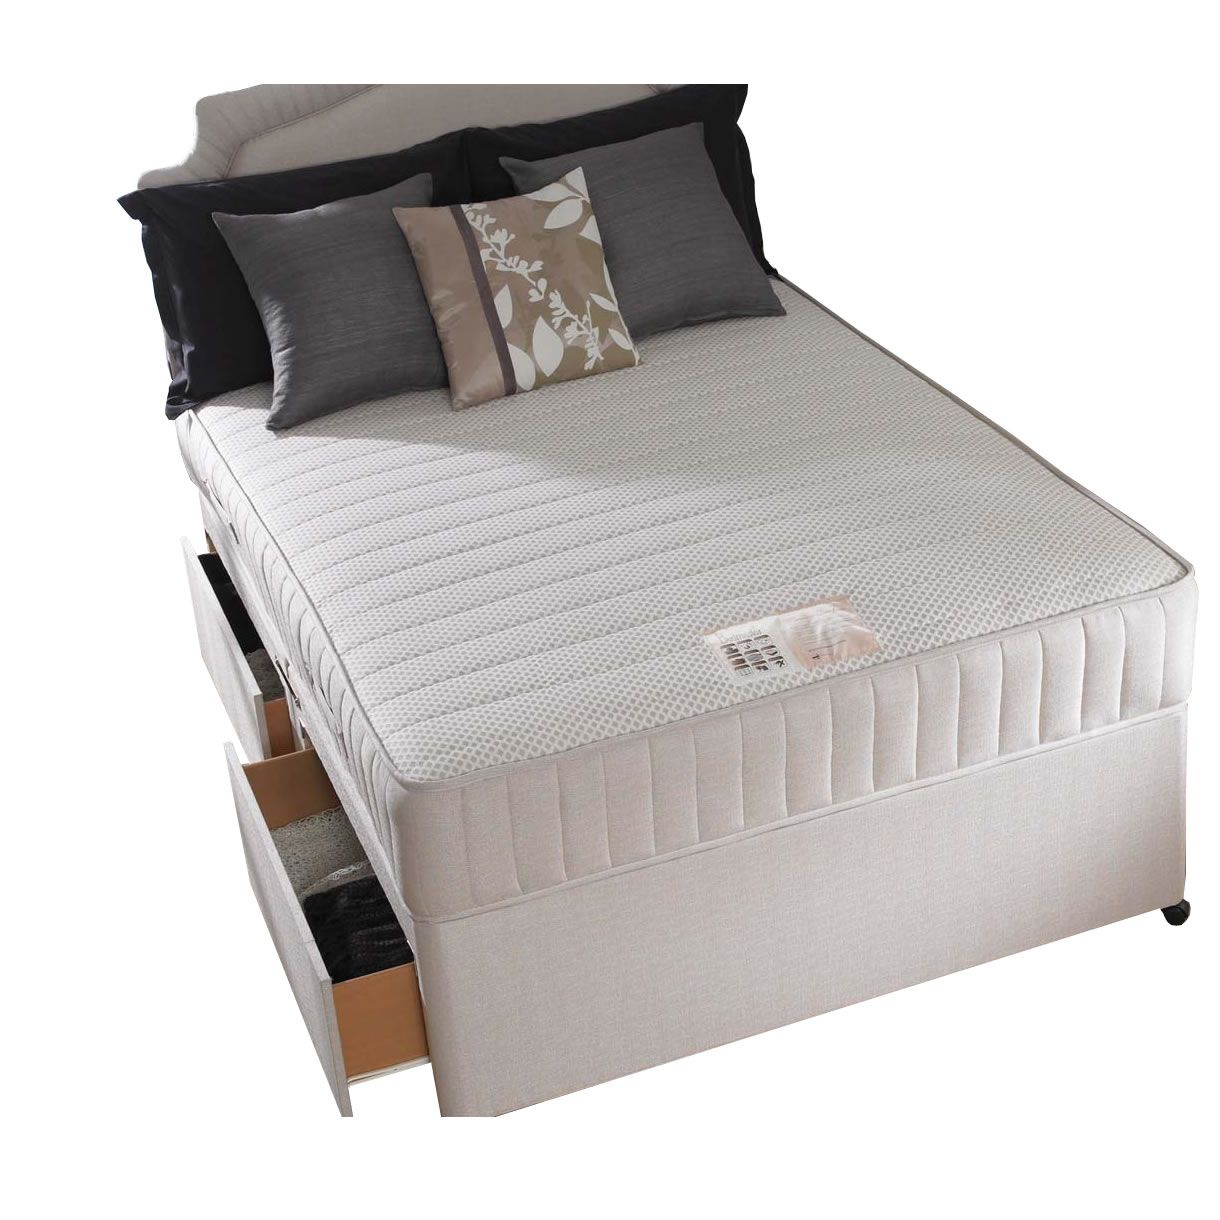 Best Retro Beds Sleigh Beds Tv Beds Kids Beds Leather 640 x 480